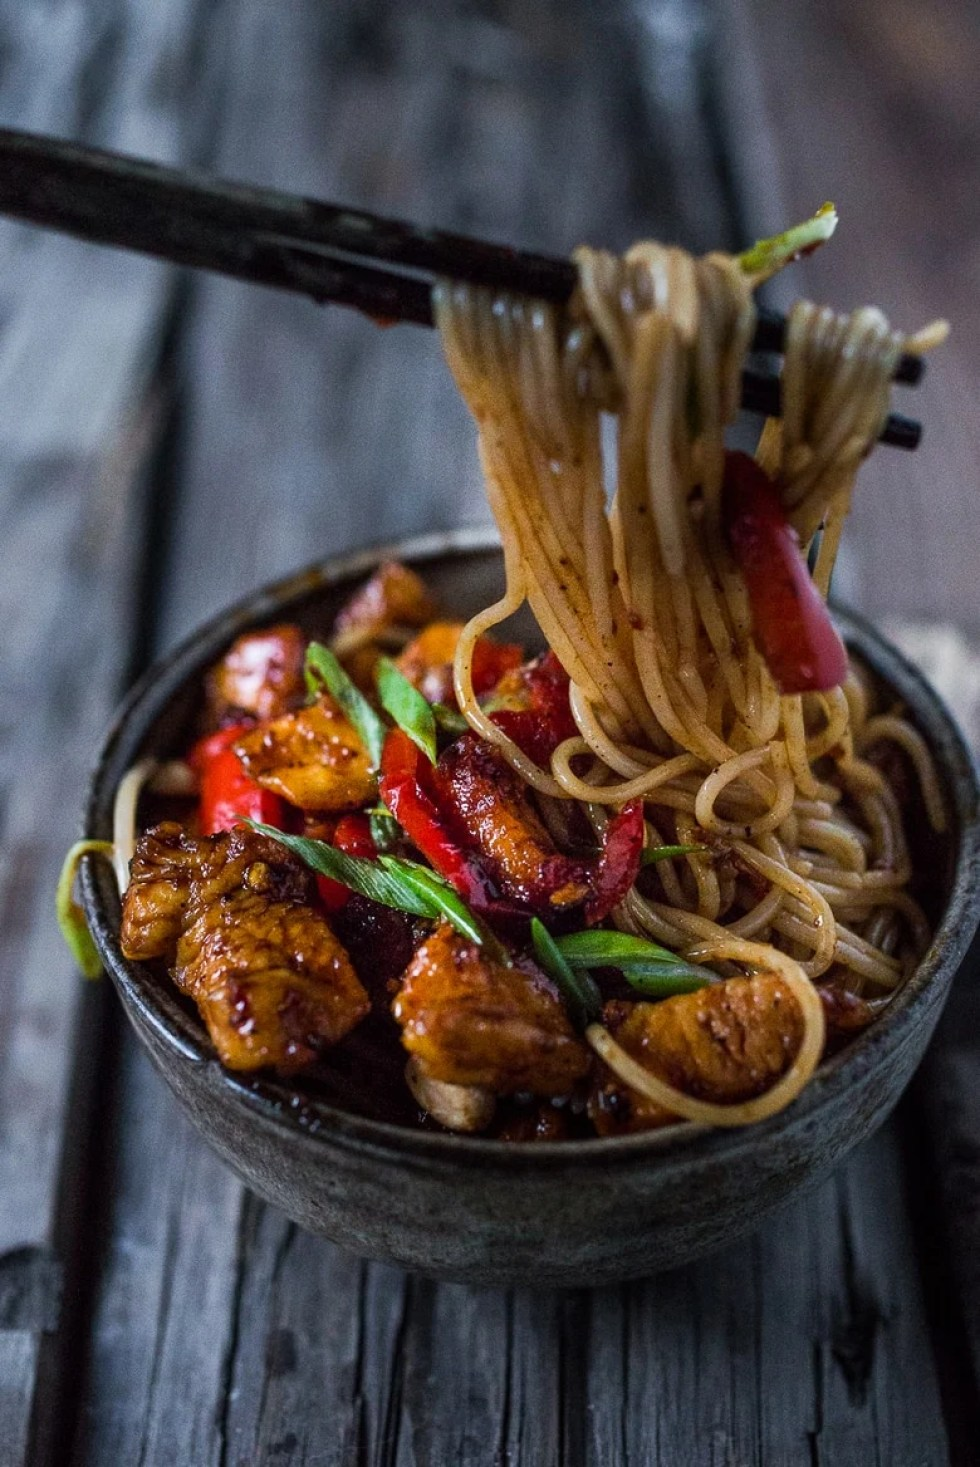 Kung Pao Noodles with chicken or roasted cauliflower served over noodles. | www.feastingathome.com